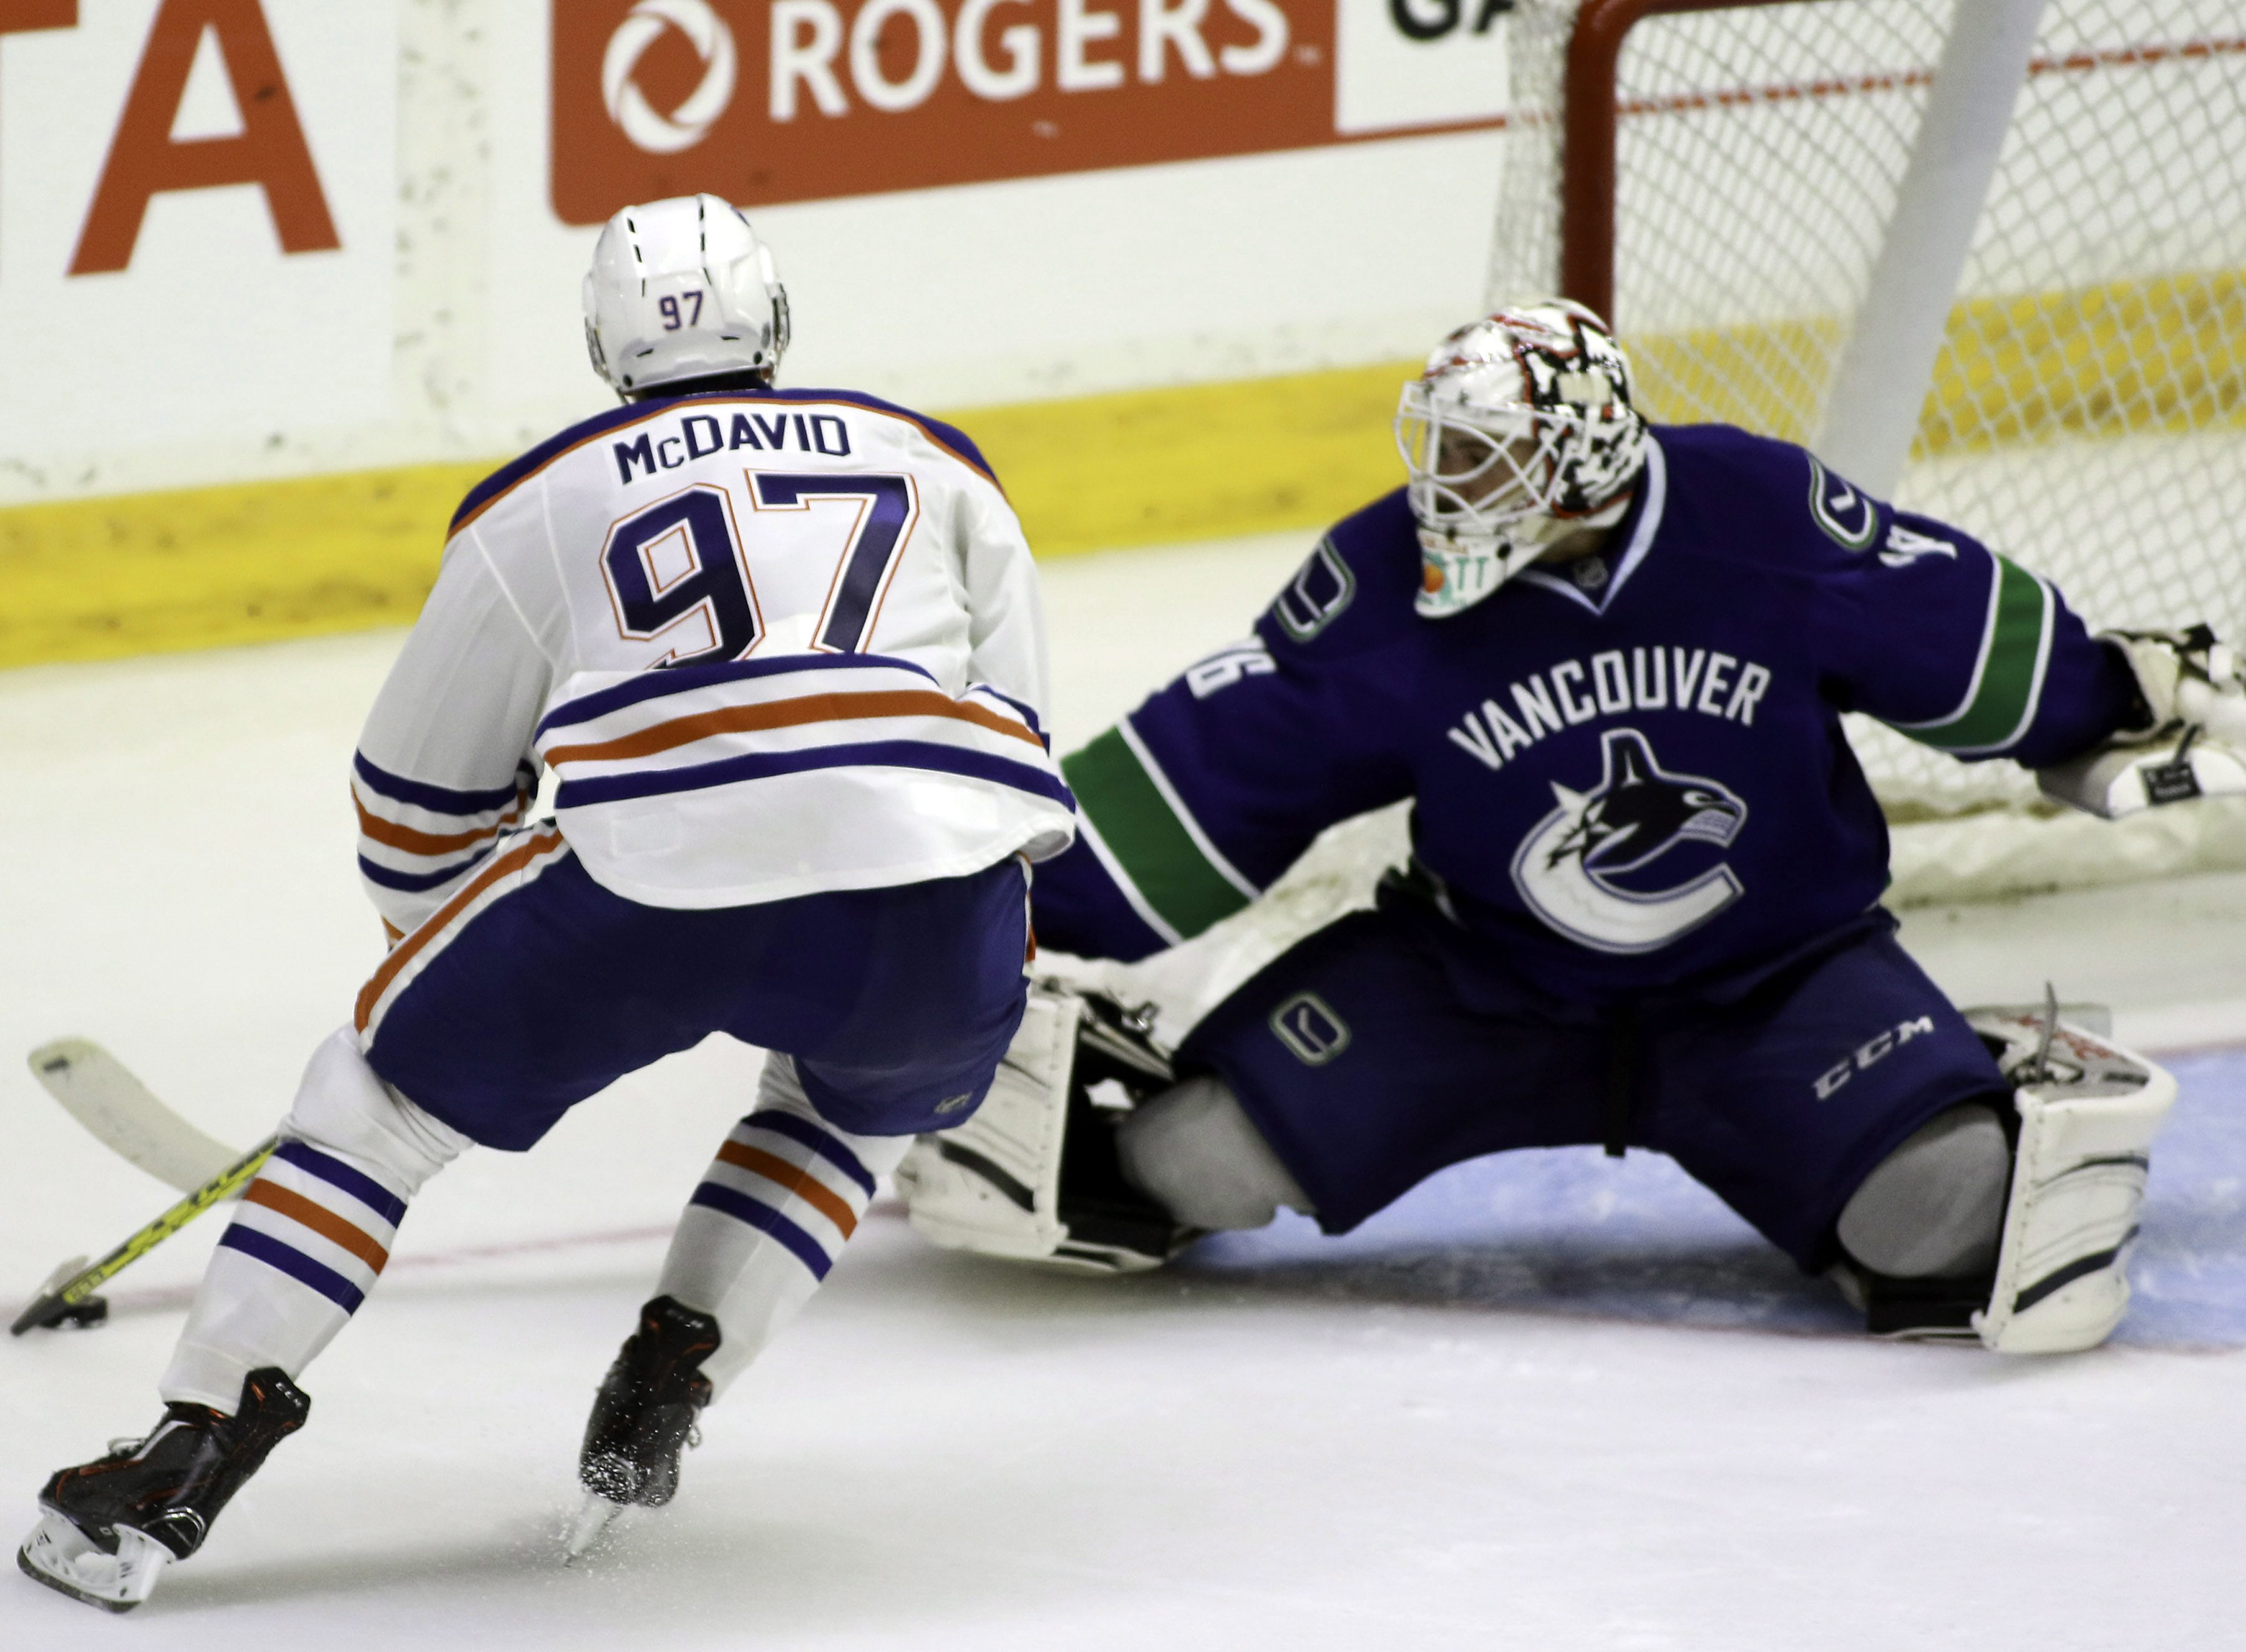 Edmonton Oliers' Connor McDavid tries to put the puck past Vancouver Canucks goaltender Clay Witt during the second period of an NHL hockey rookie tournament game Friday, Sept. 11, 2015, in Penticton, British Columbia. (Jeff Bassett/The Canadian Press via